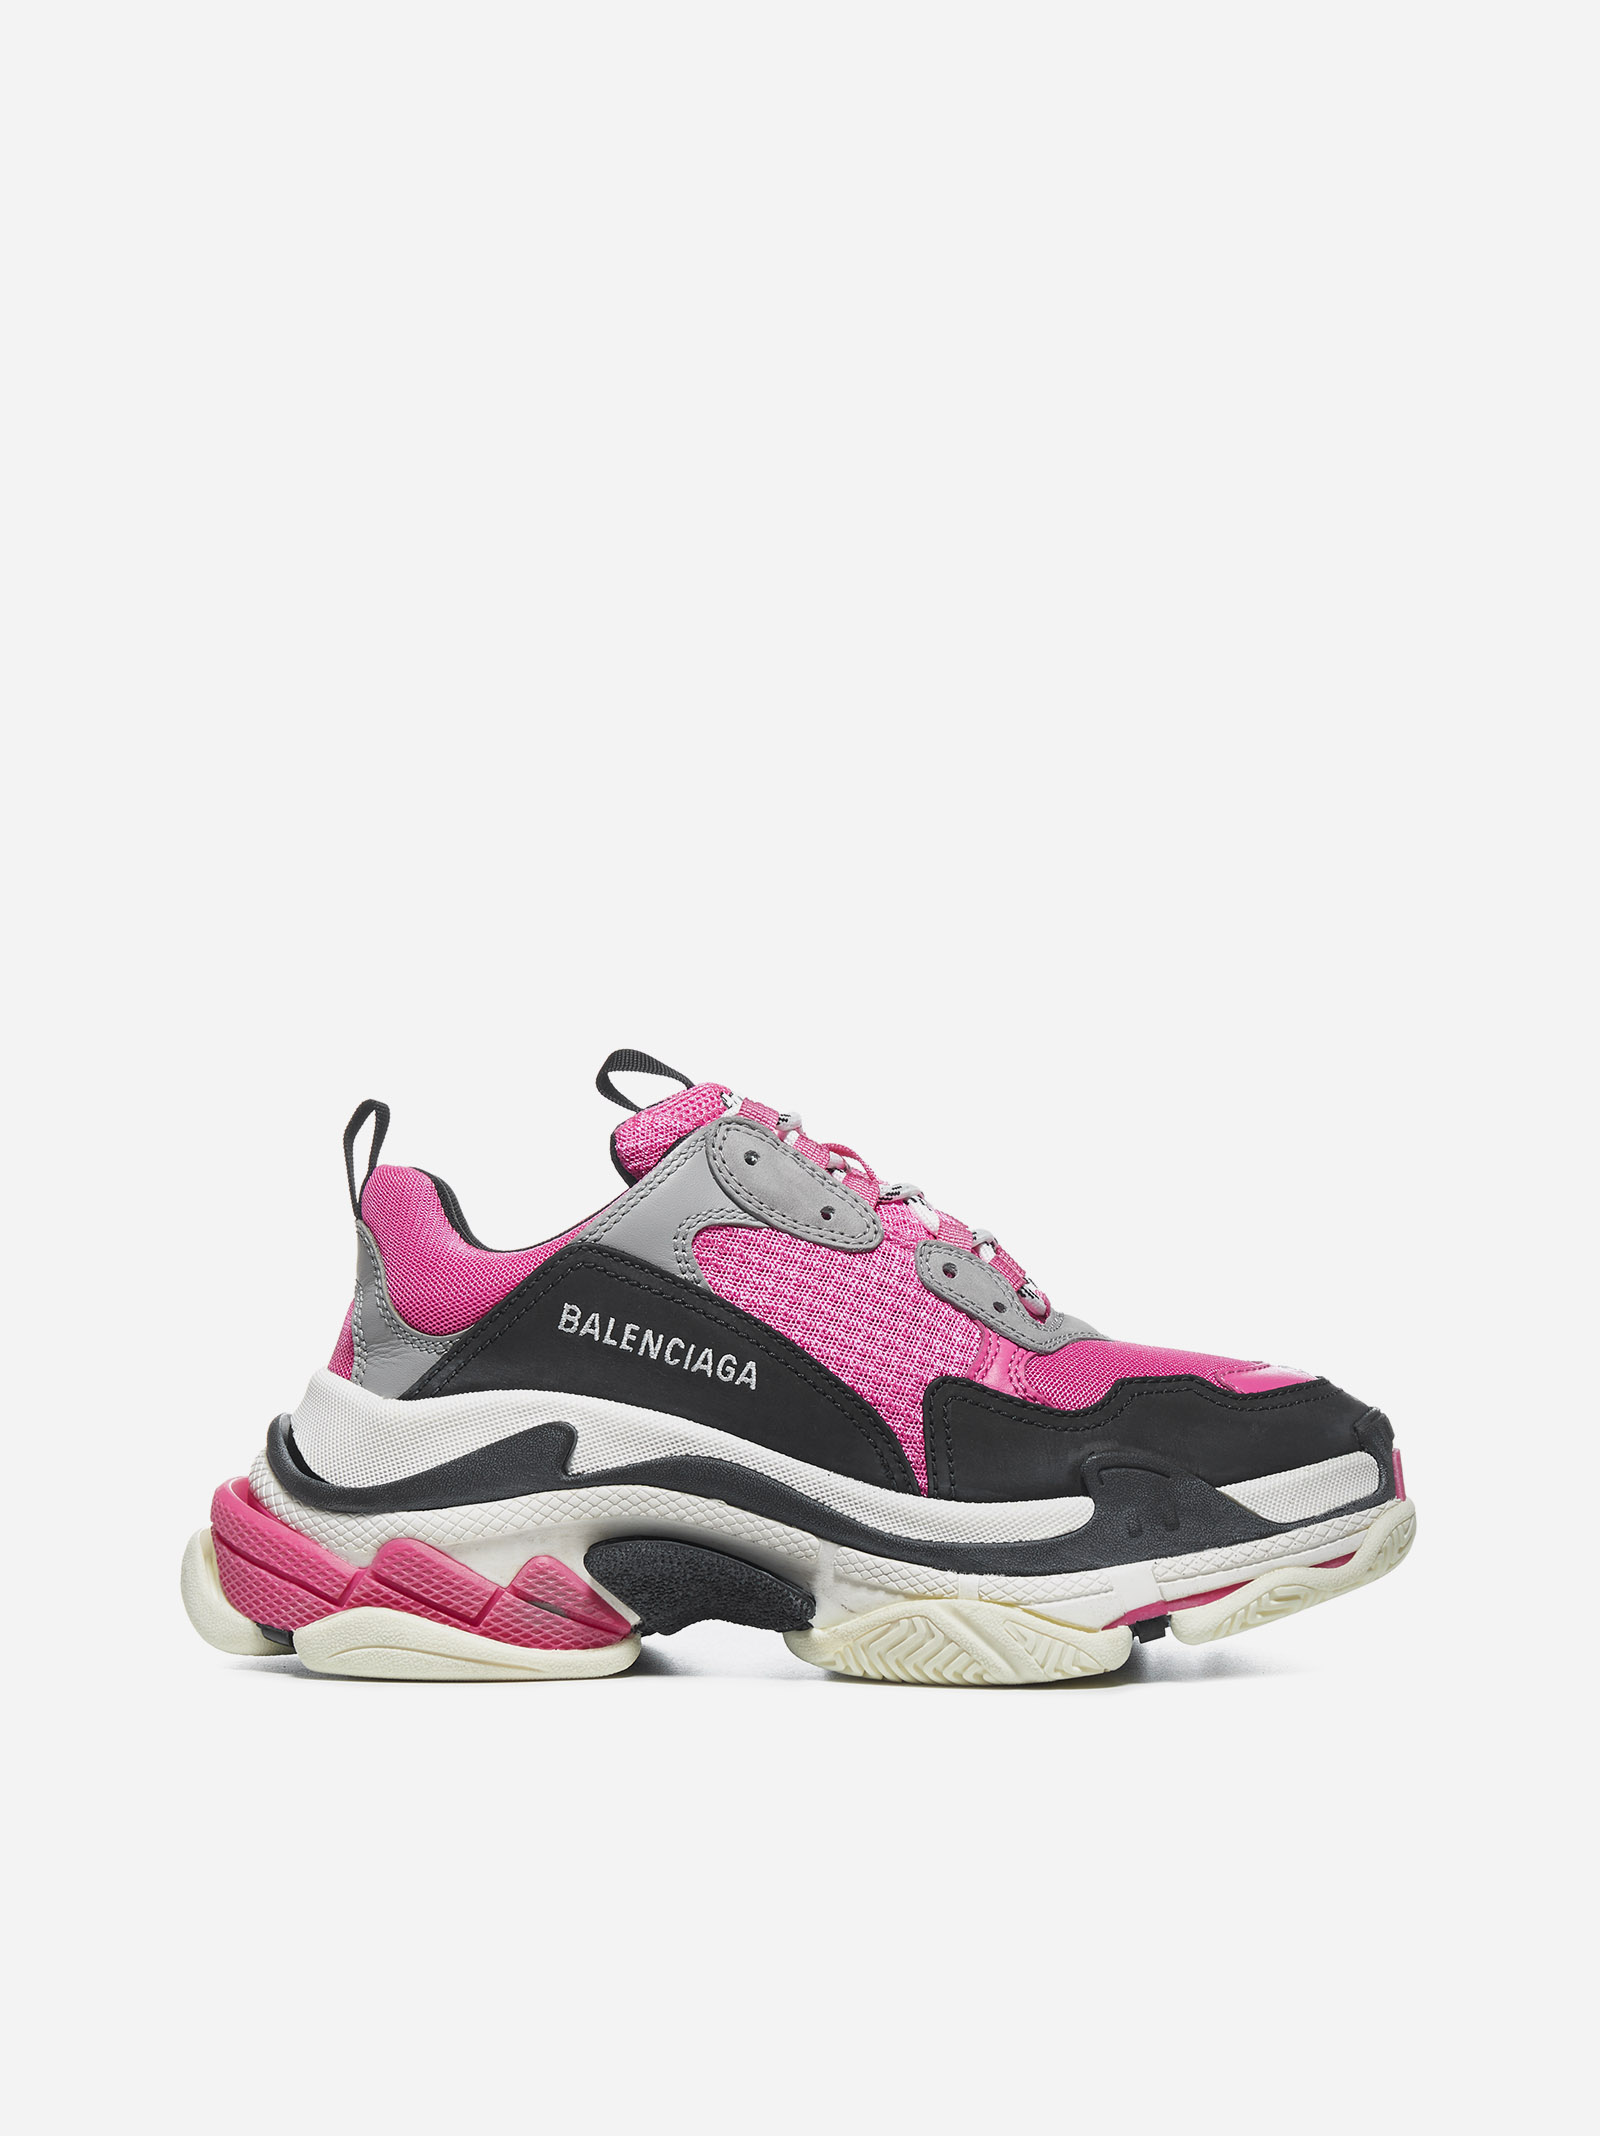 Balenciaga TRIPLE S LEATHER AND NYLON SNEAKERS